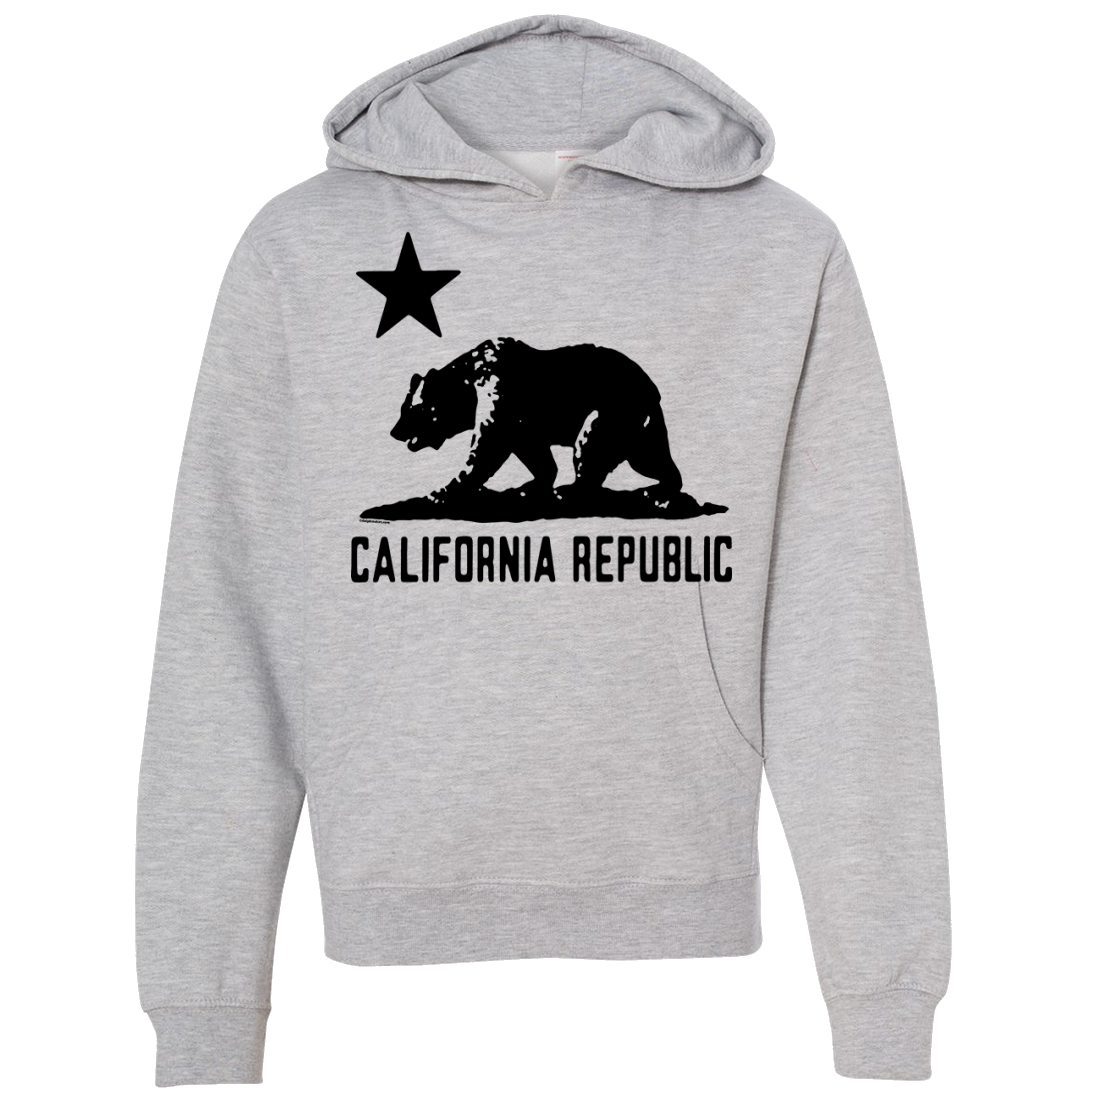 California Flag Oversize Black Silhouette Premium Youth Sweatshirt Hoodie